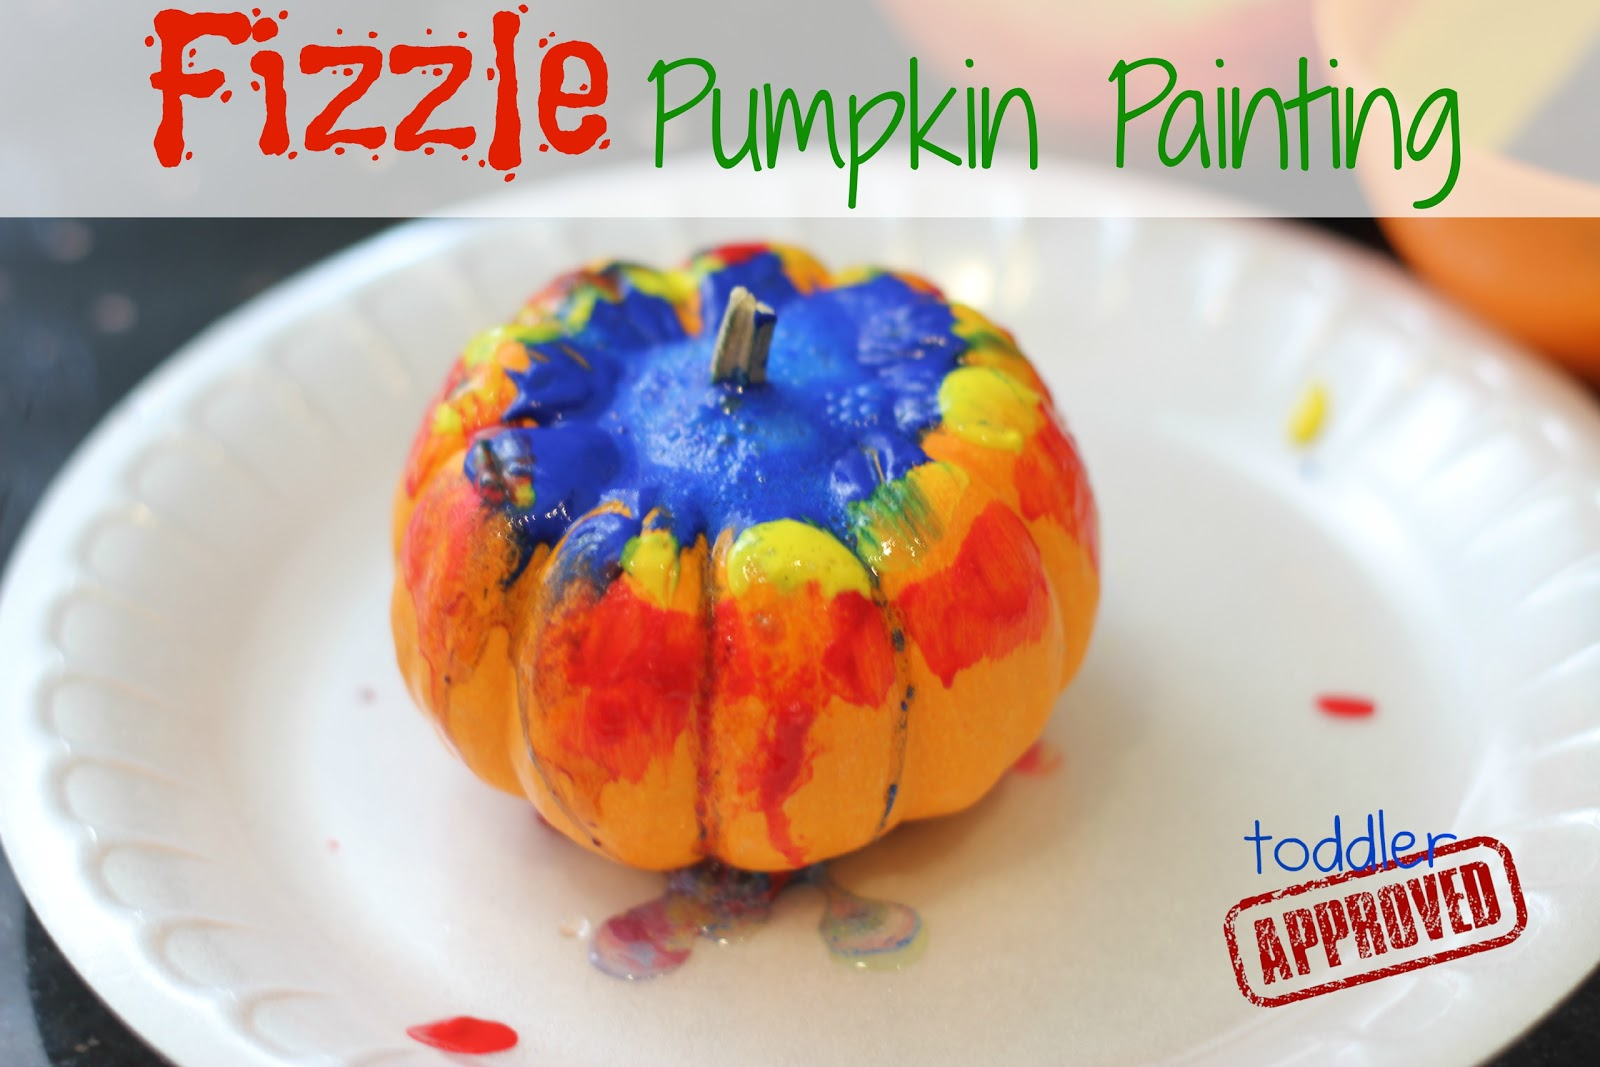 Toddler Approved Painted Name Turkey Pumpkins